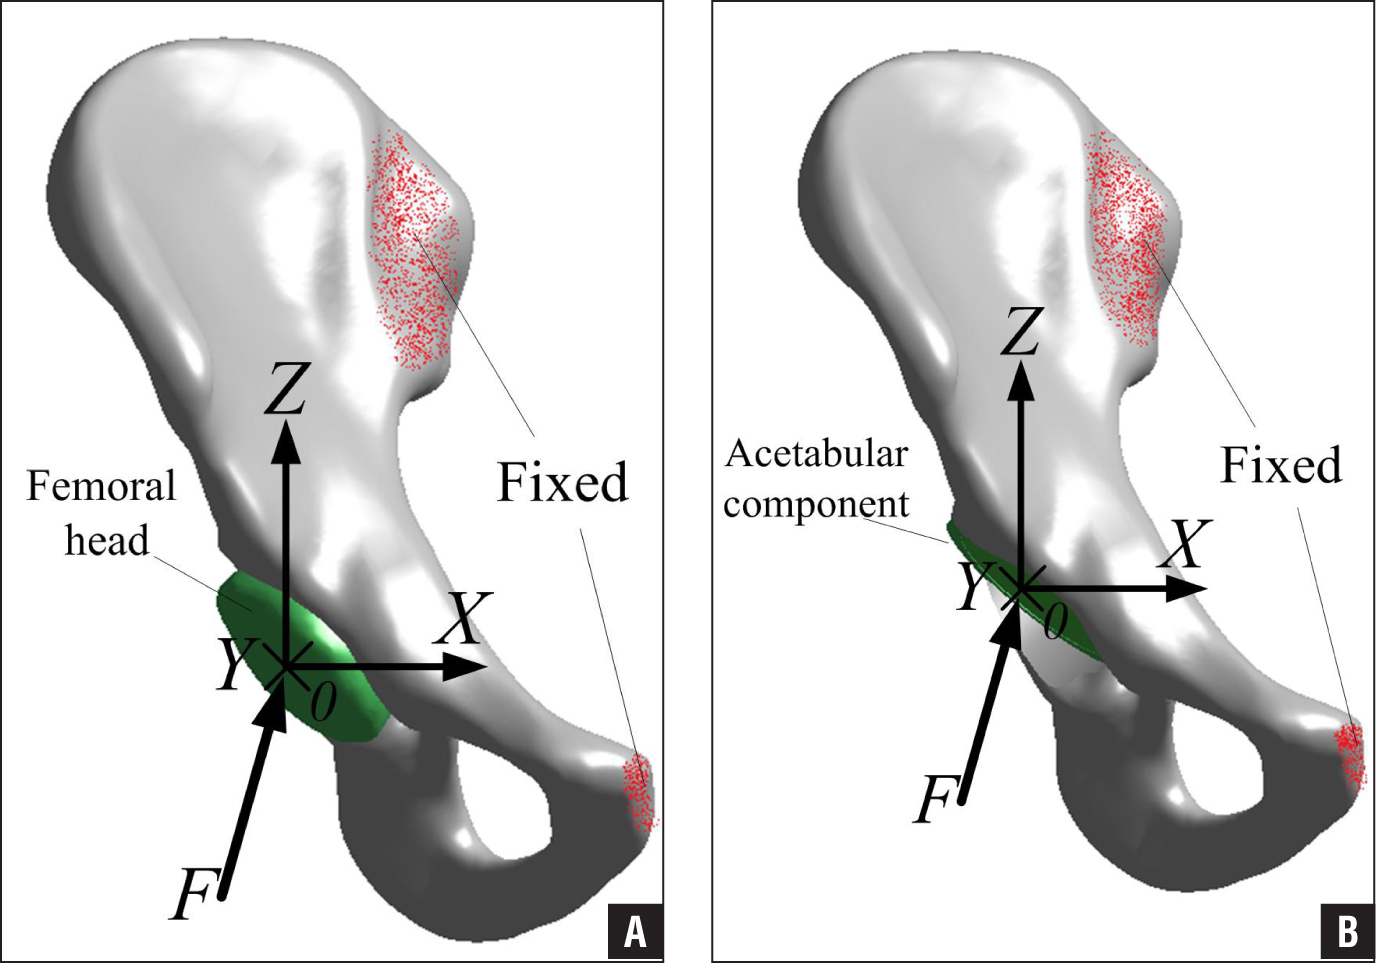 Hemi-pelvis 3-dimensional model. Normal hip model (A). Example of the acetabular reconstructed model using the high hip center technique (B). Abbreviations: F, hip joint contact force vector; O, the center of rotation; X, Y, and Z, directions in coordinates.